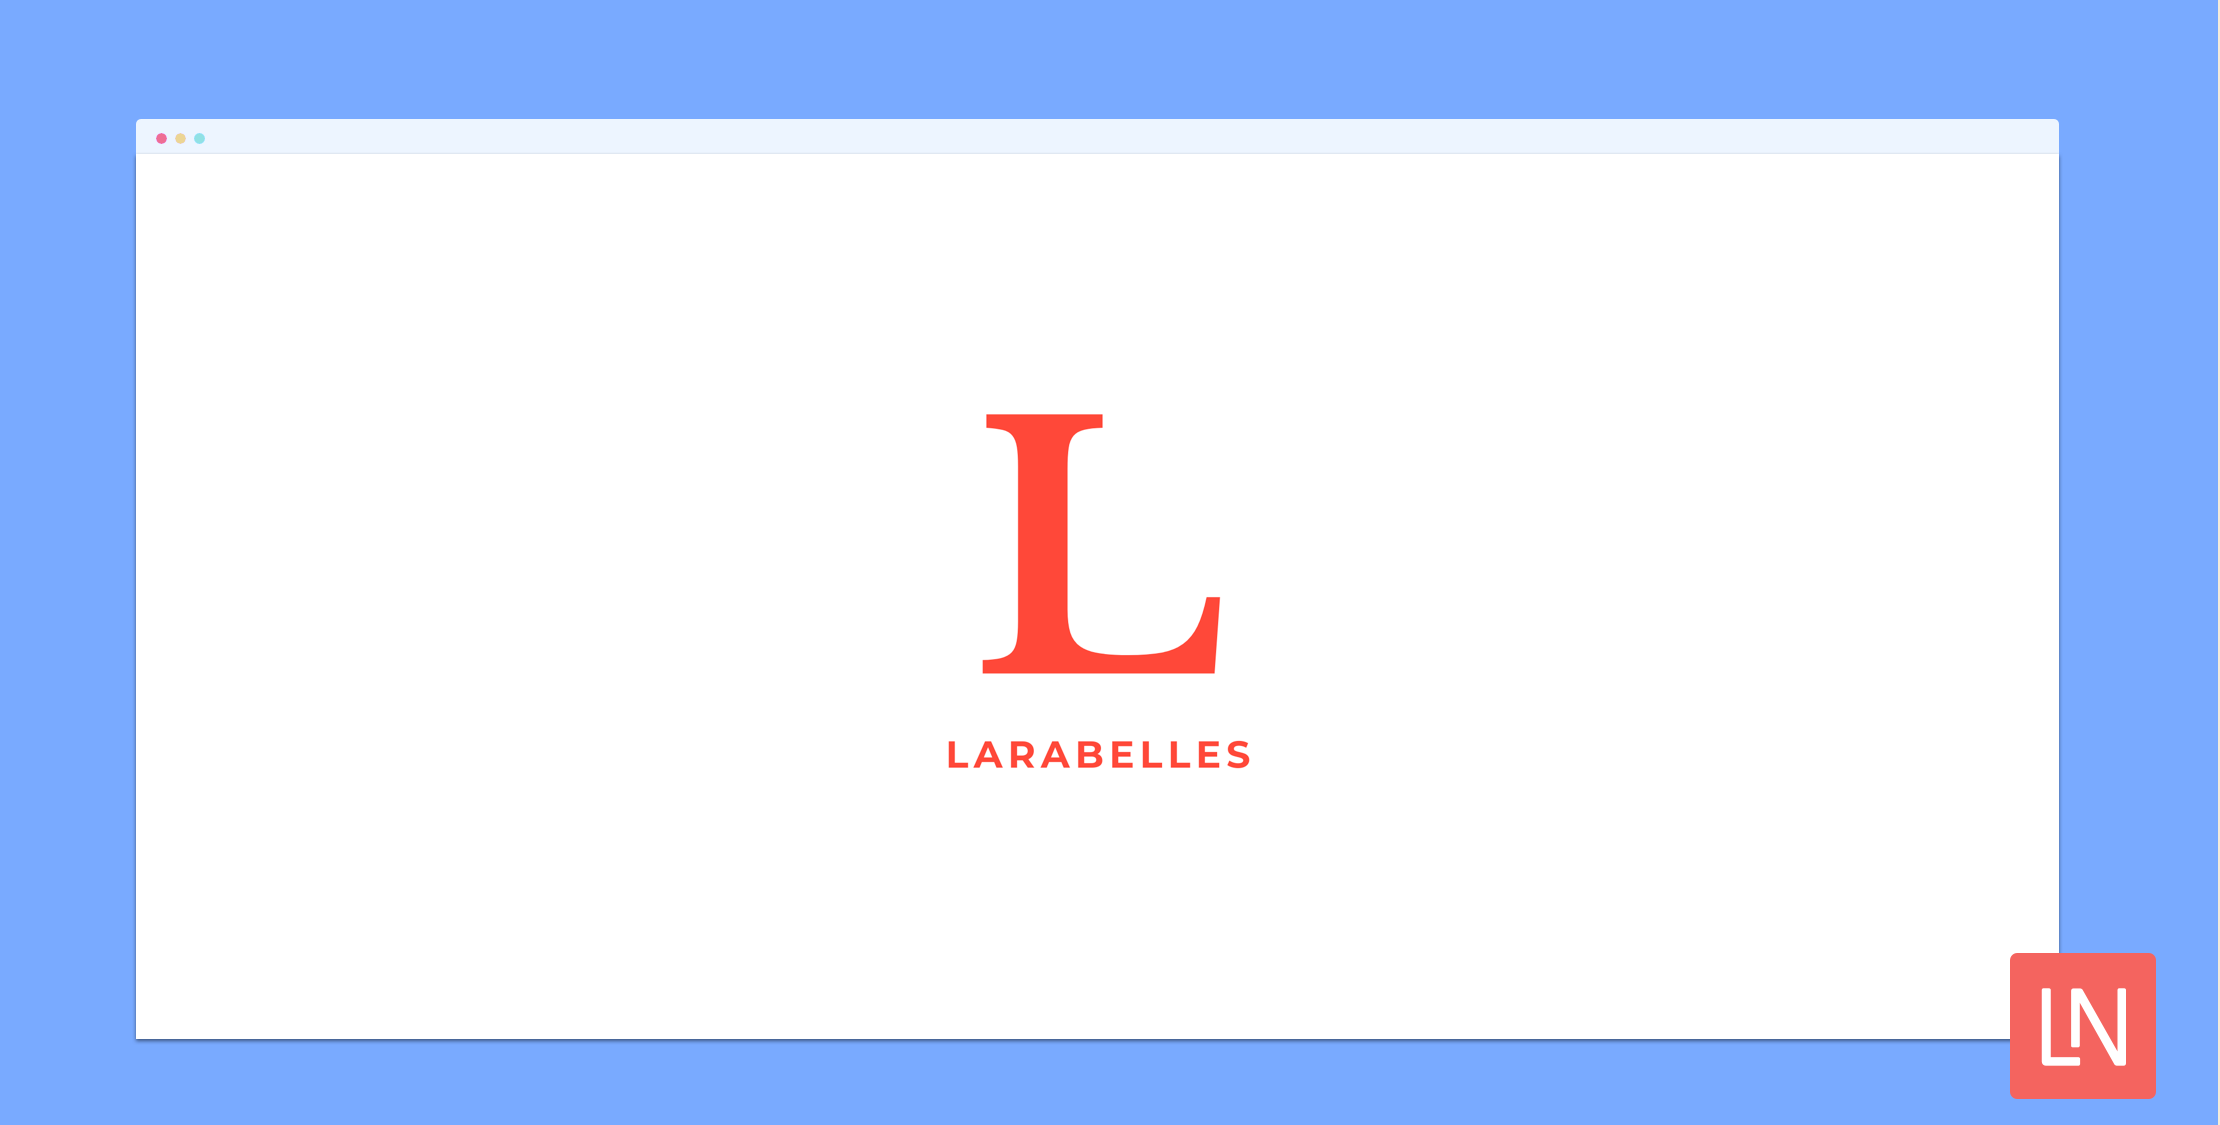 larabelles-featured.png